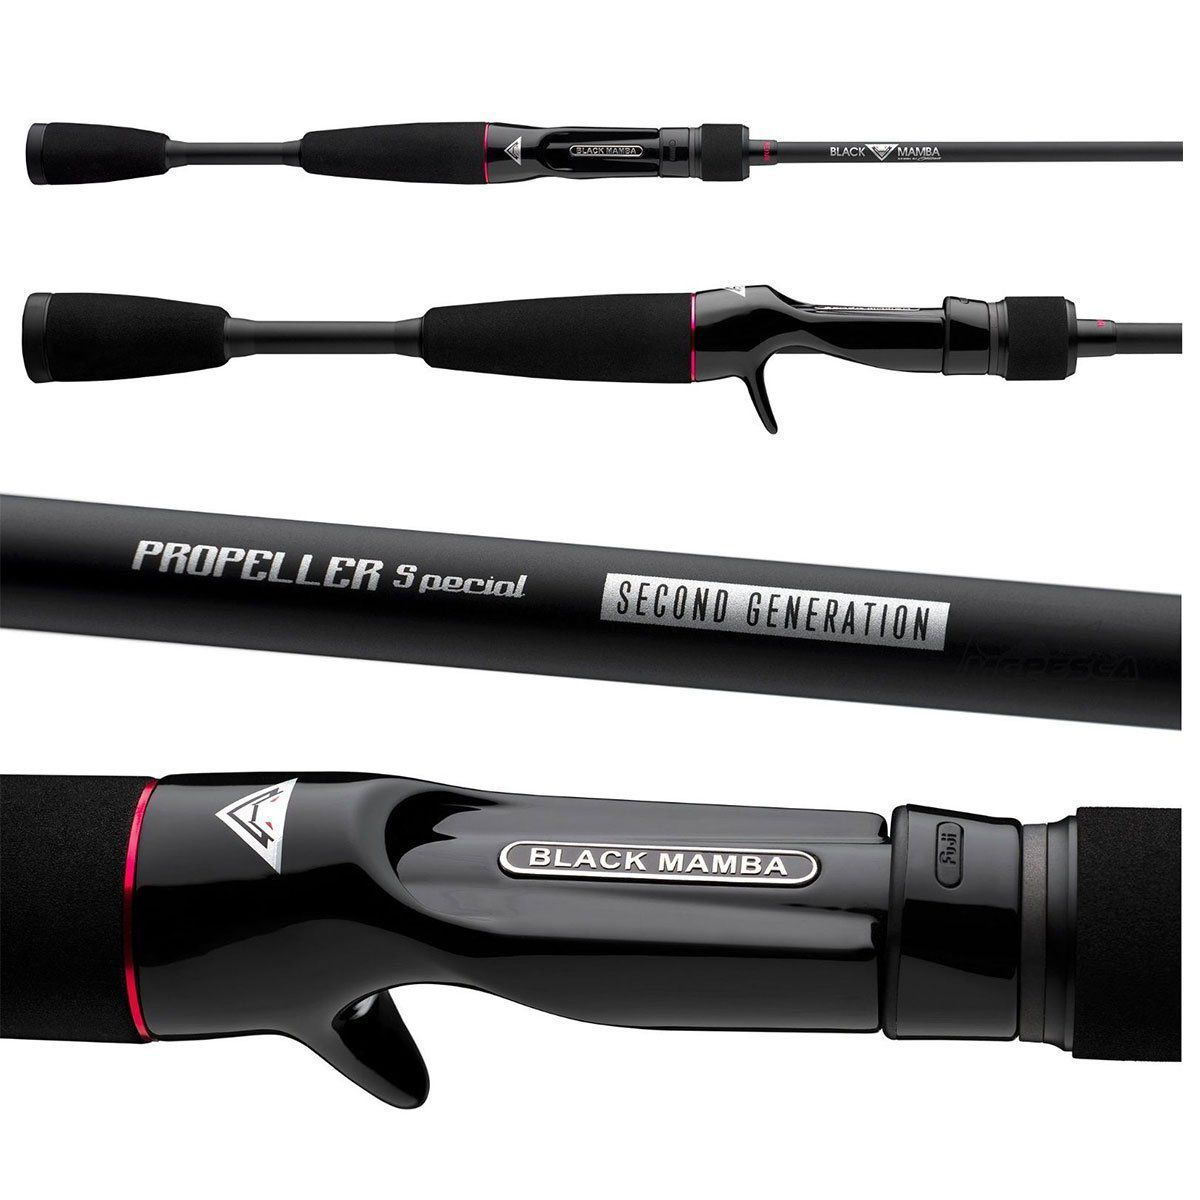 Vara Redai Black Mamba Second Gen. Carretilha 1,76m 5?8? 12-20LB